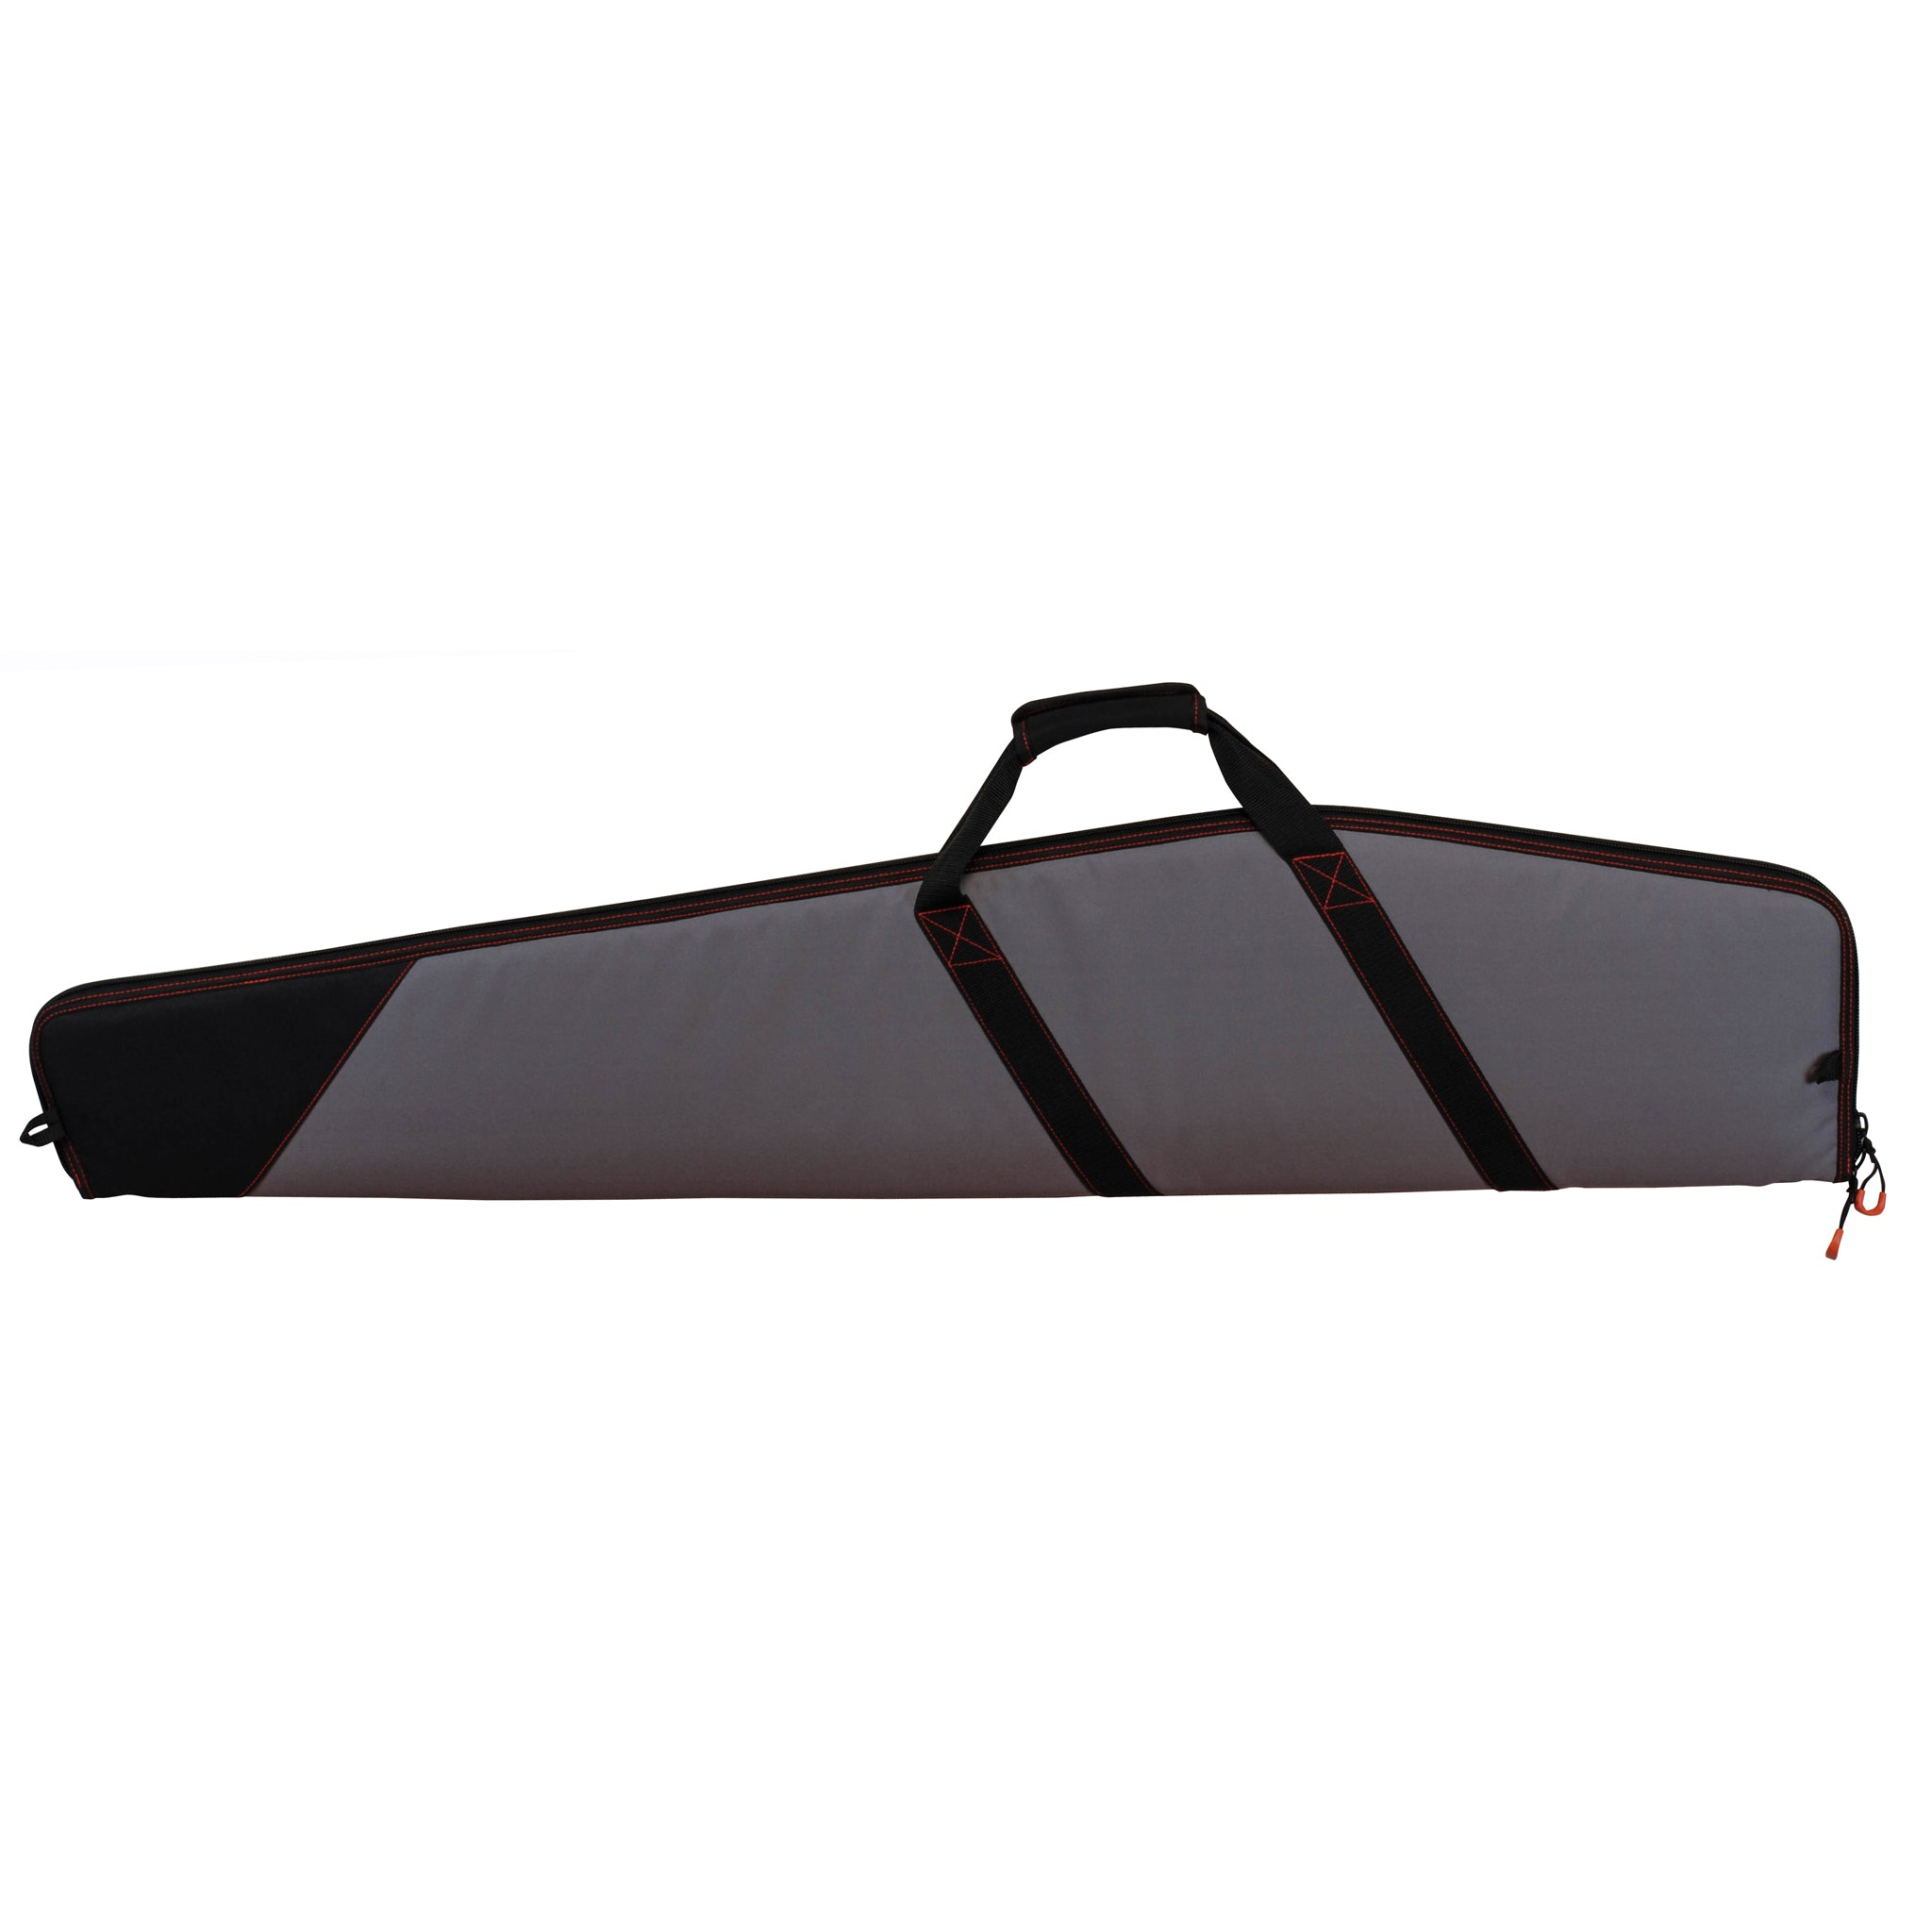 Diablo Series Rifle Case